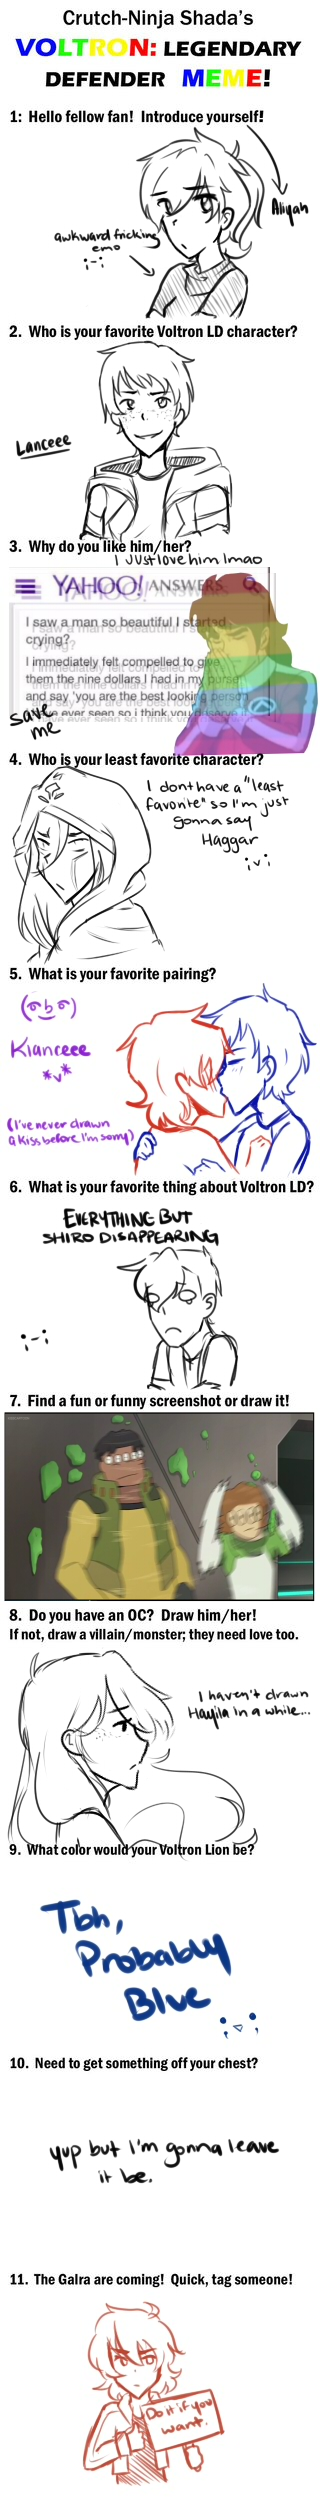 Voltron Meme (I got really bored ok) by AliyahIceQueen